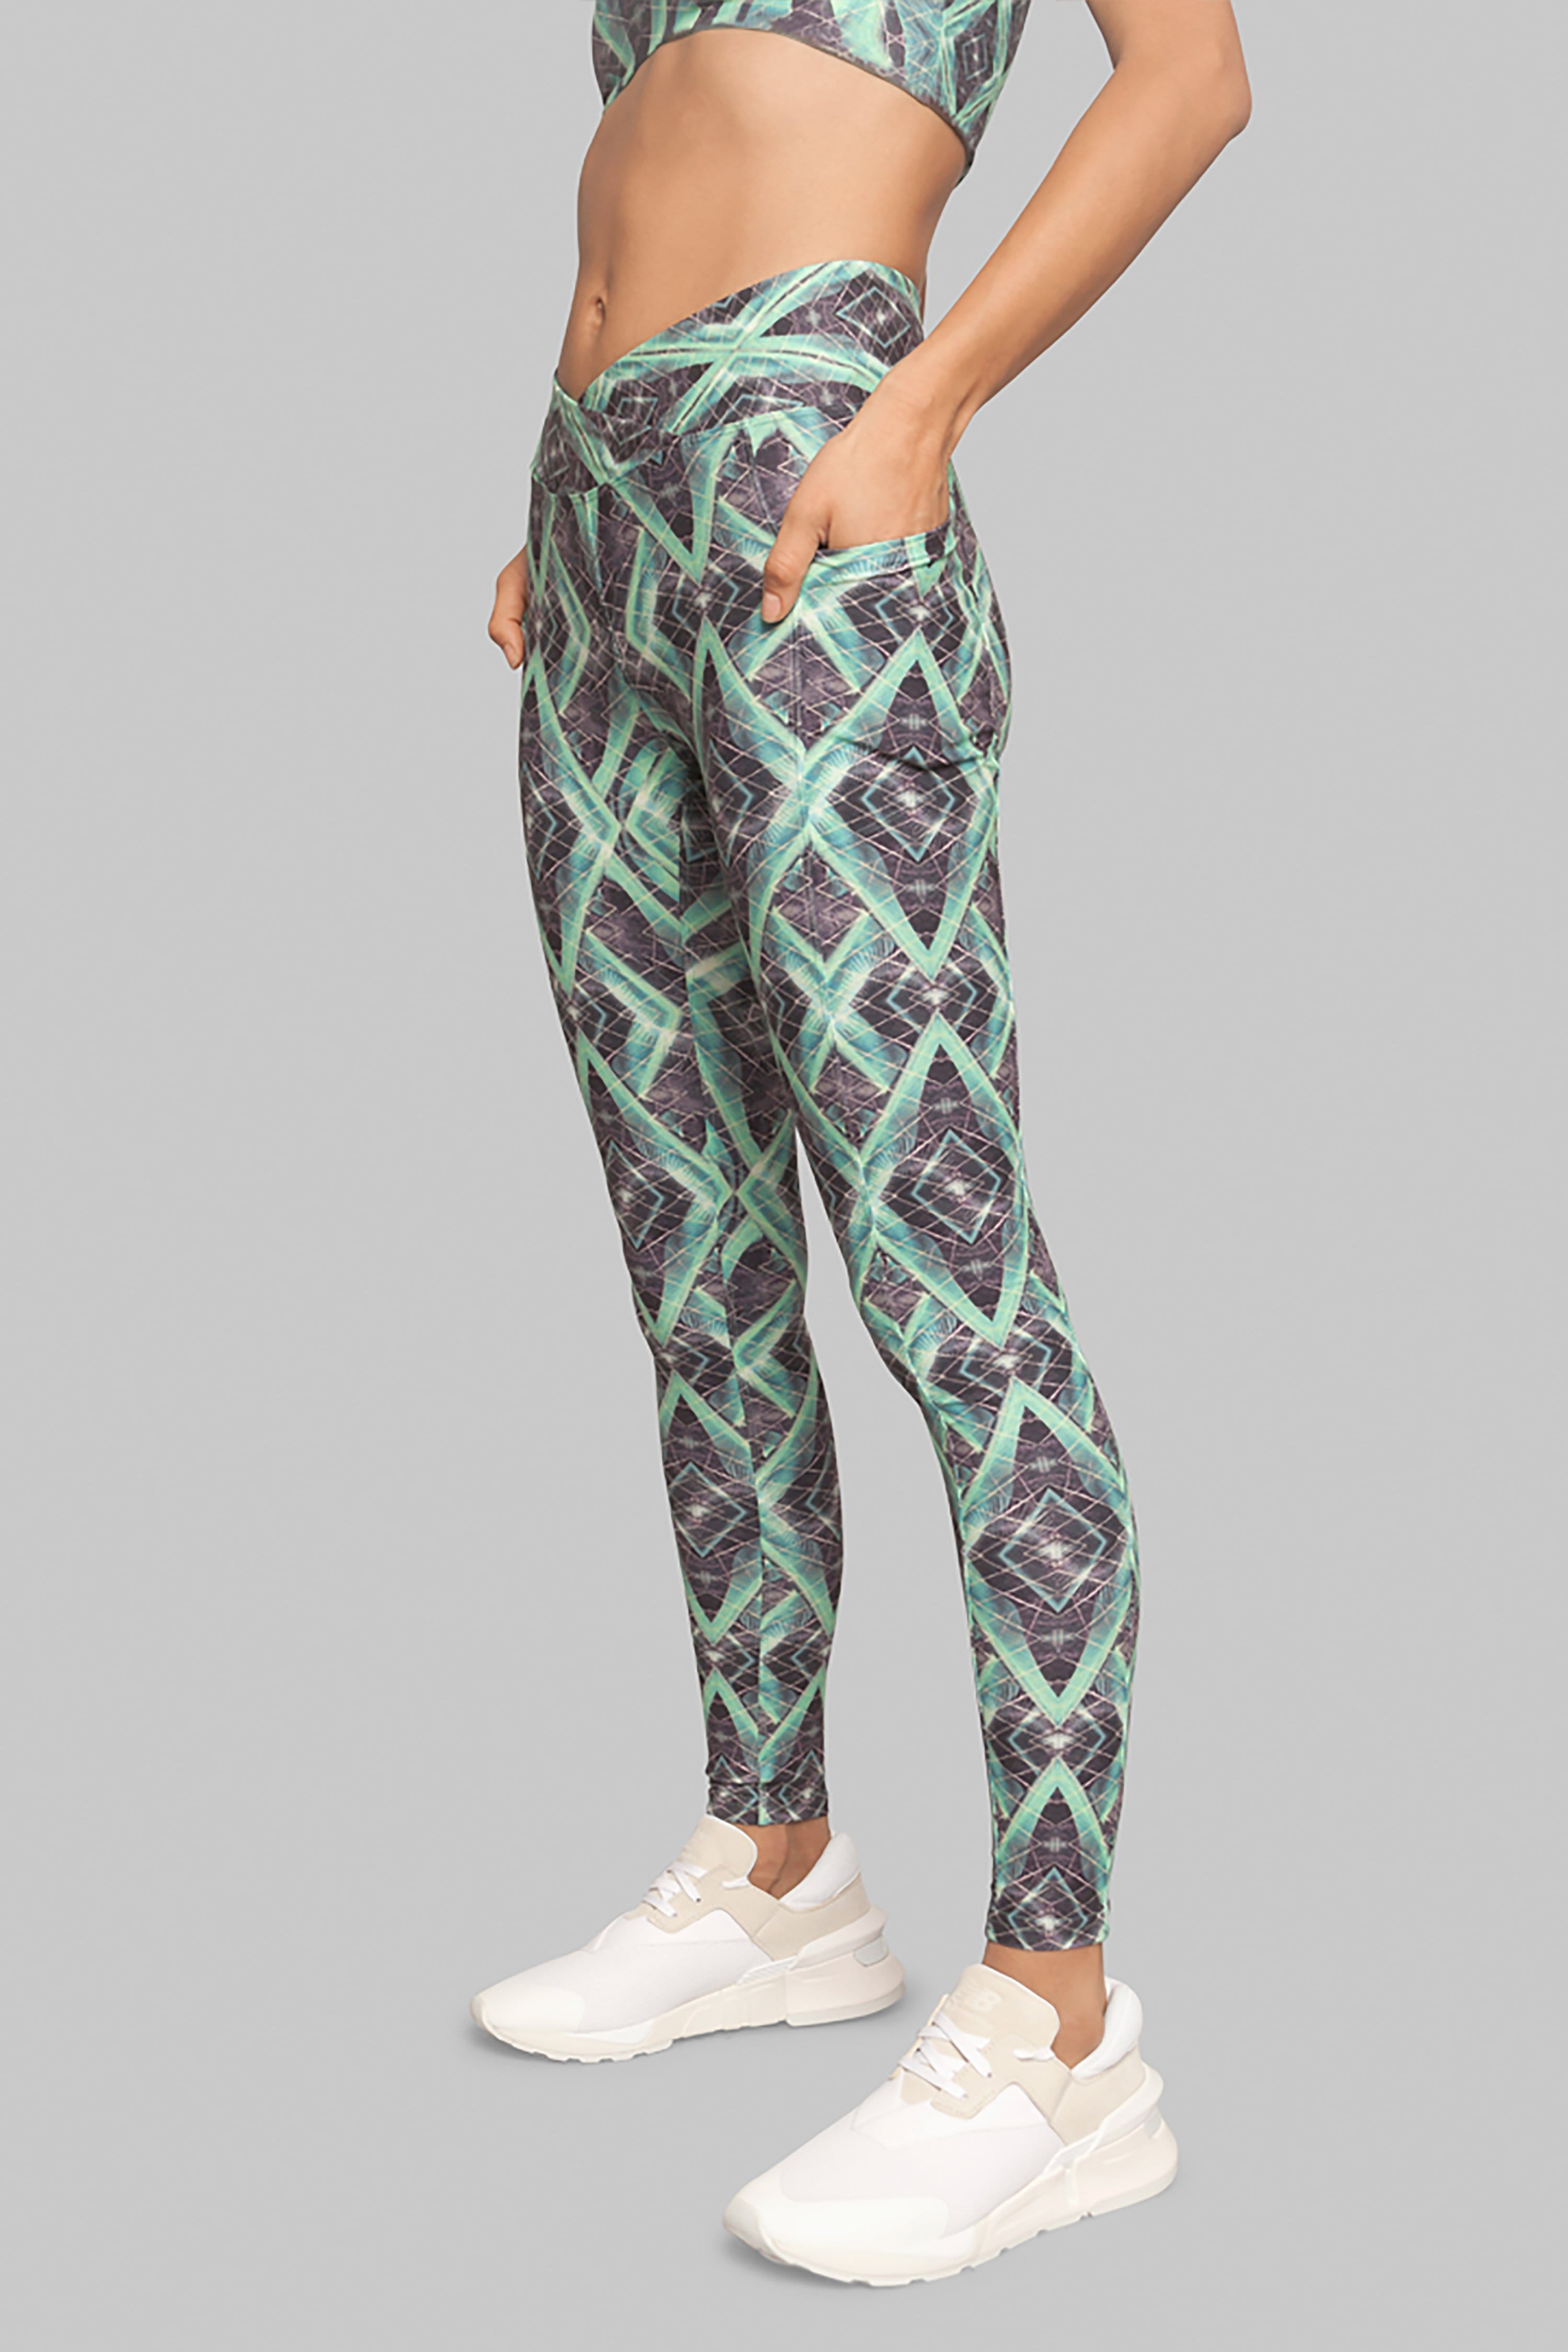 Sustainable Leggings Green Jungle Helix Legging green printed legggings with pockets